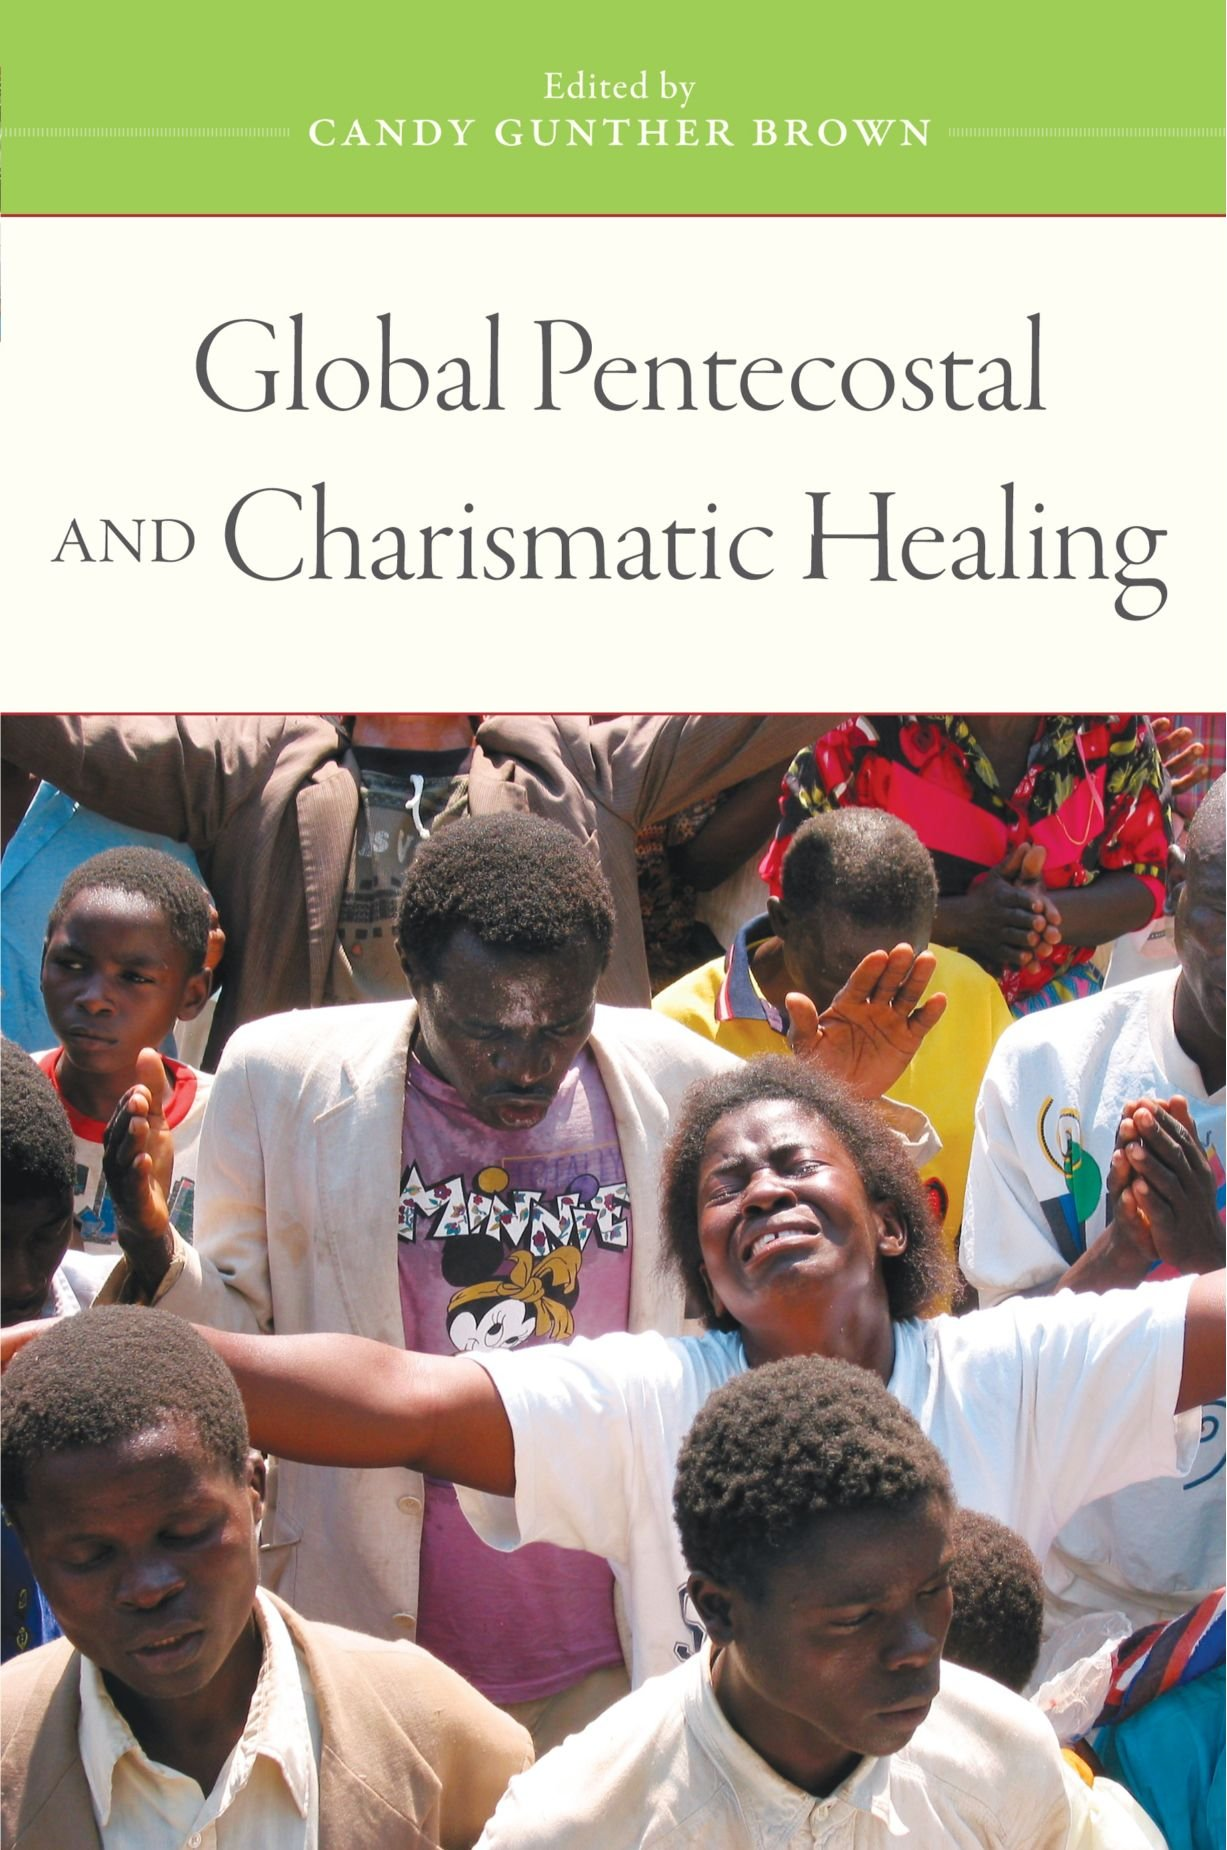 Global Pentecostal and Charismatic Healing by Brand: Oxford University Press, USA